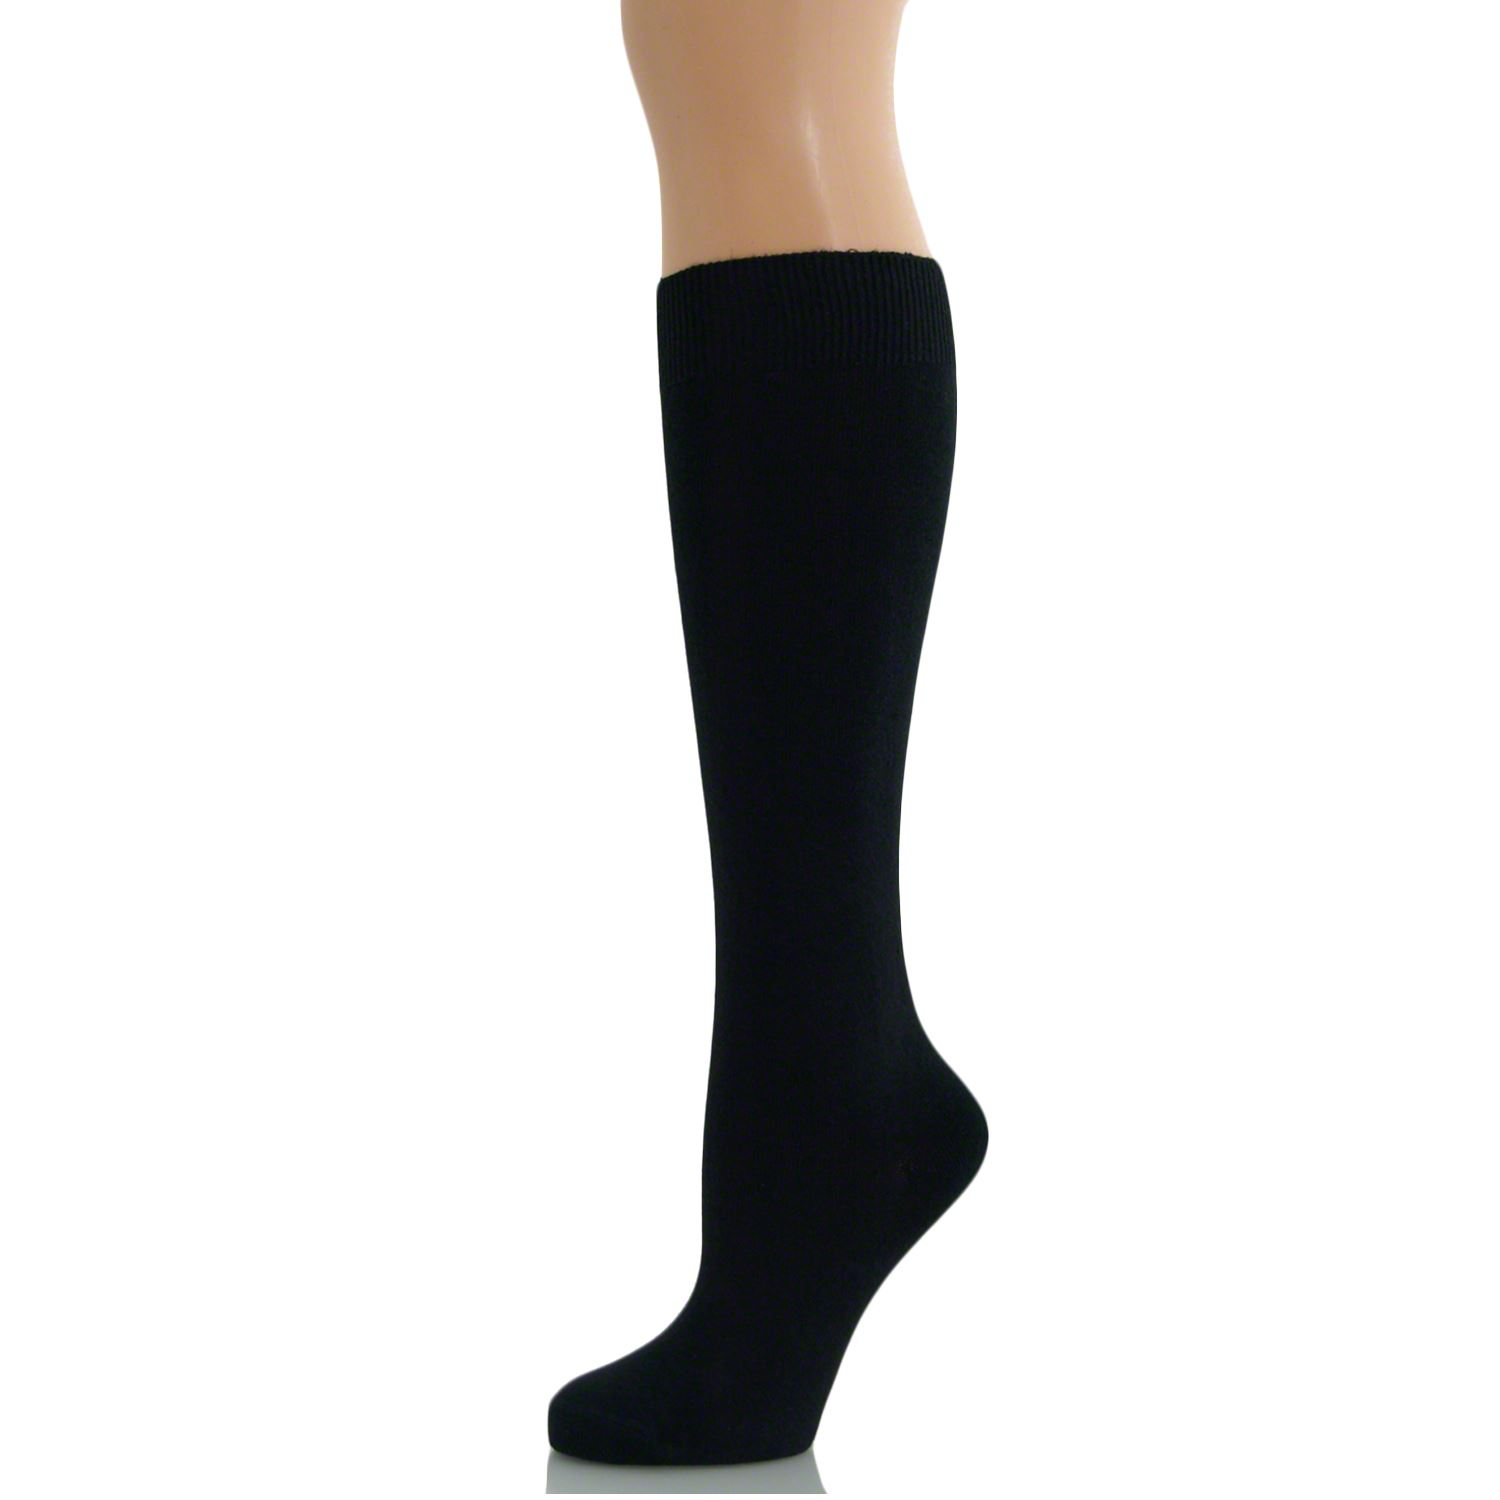 If you're looking for cool socks to keep your outfits looking awesome, then you've definitely come to the right place. Whether you want to keep things traditional with tube socks or have a little fun with funky print knee high socks, Spencer's is the perfect one-stop shop for knee socks of all styles!